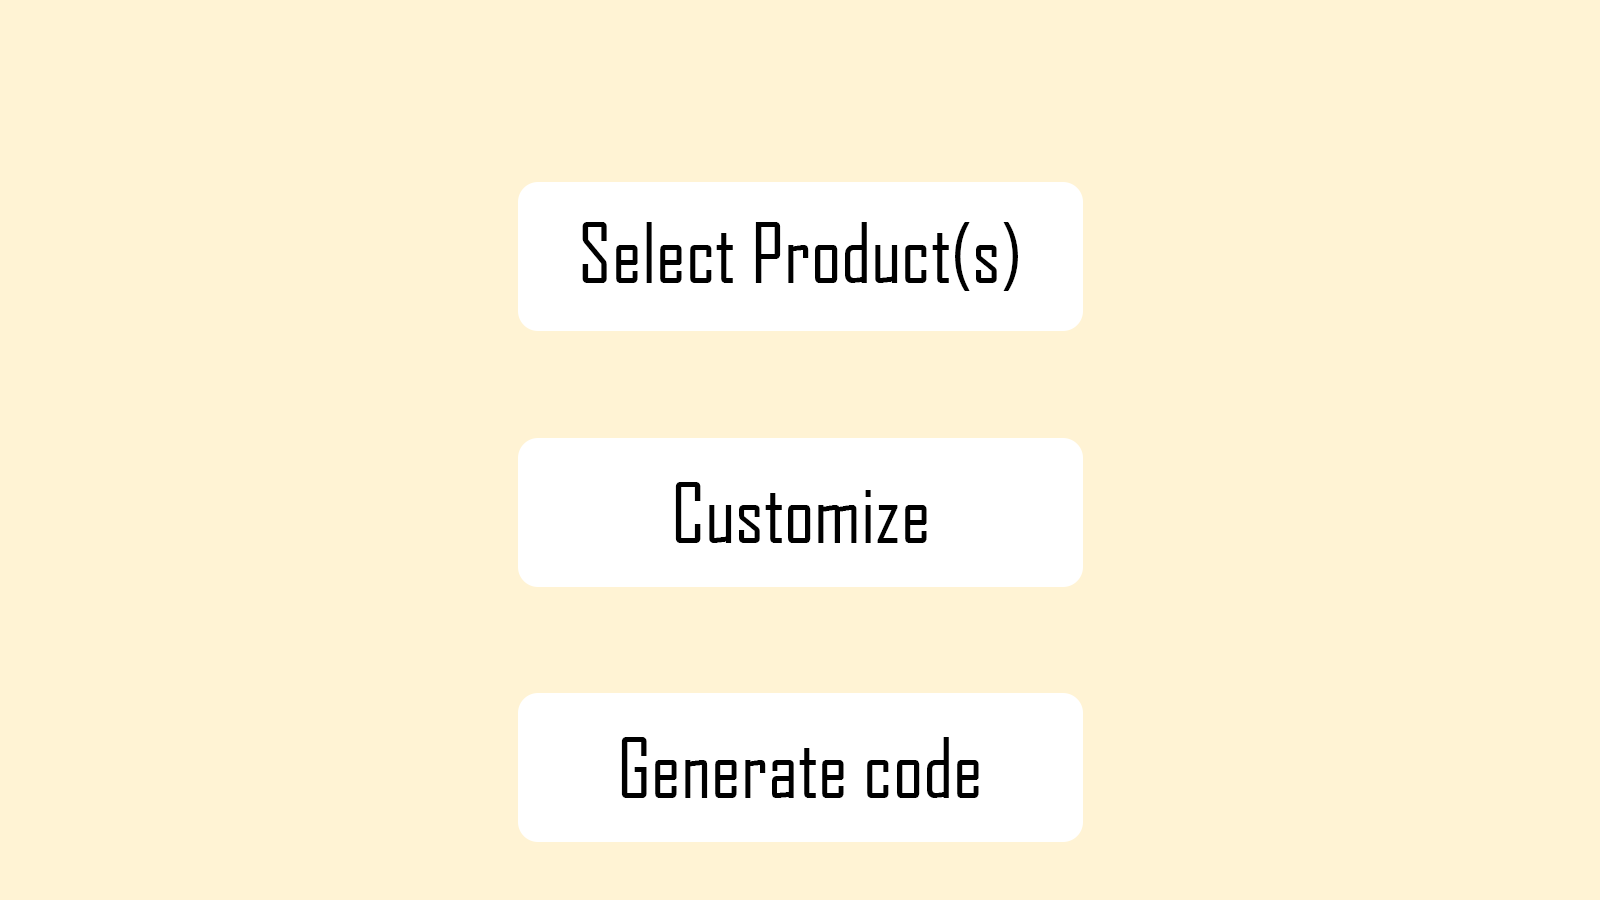 User-friendly UI and easy to use in 3 steps